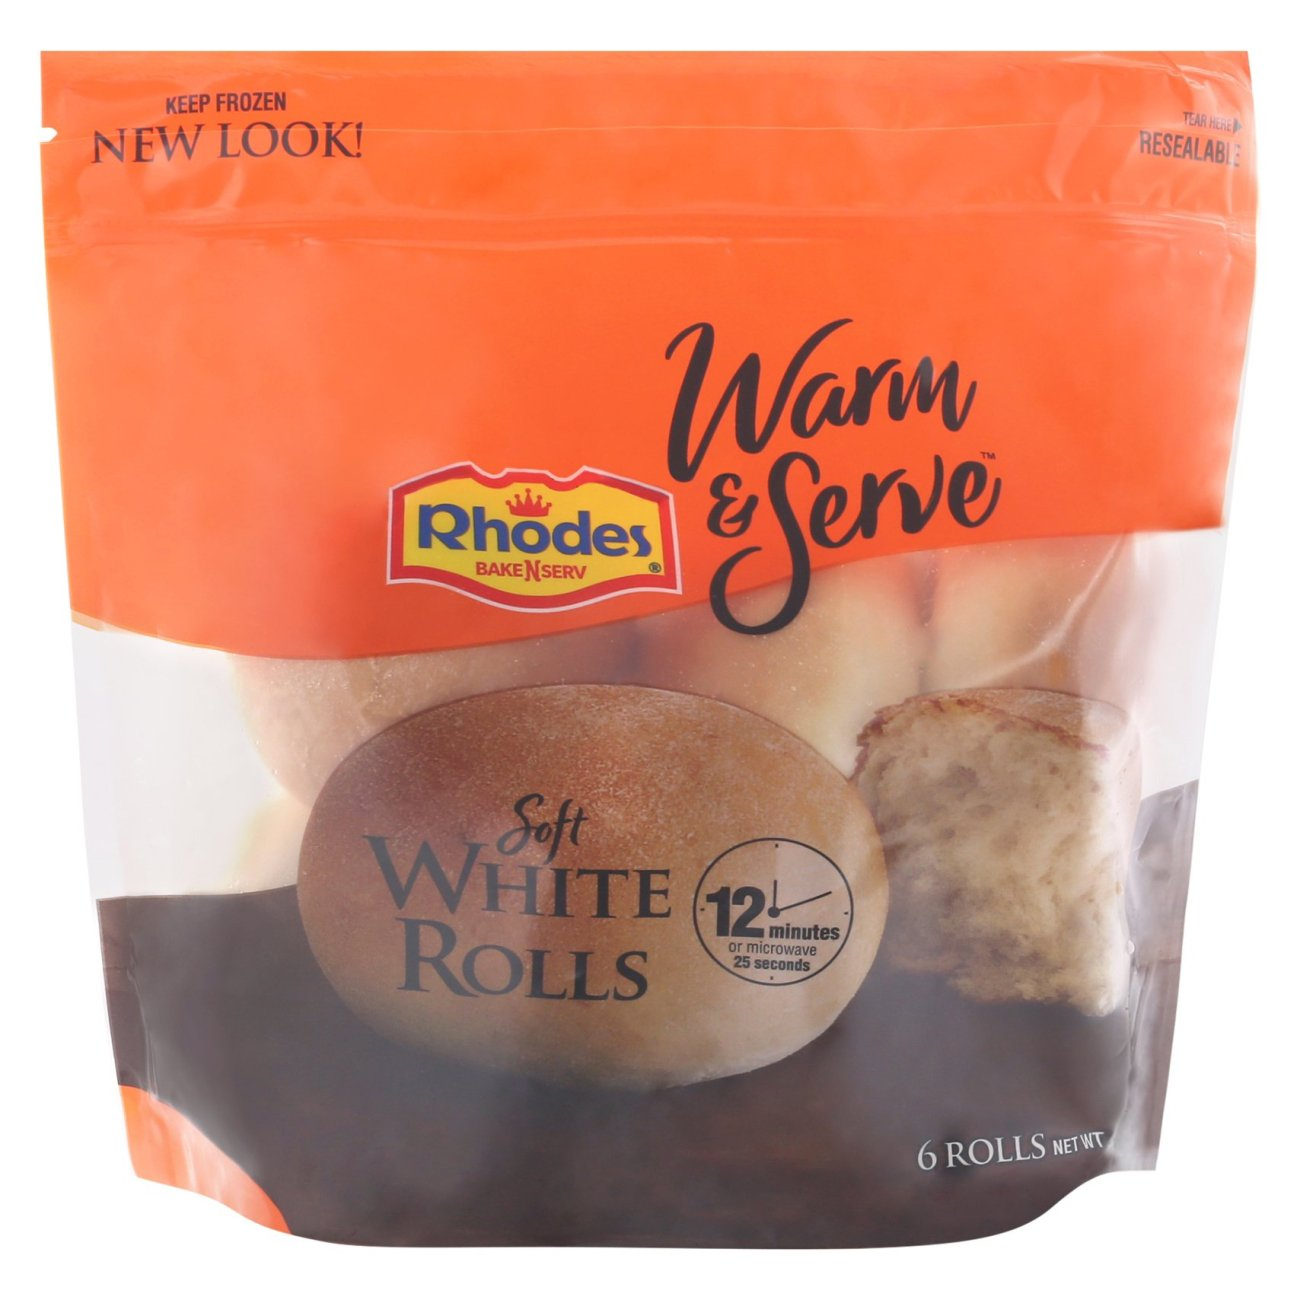 Rhodes Bake N Serv Soft White Rolls Shop Bread At H E B